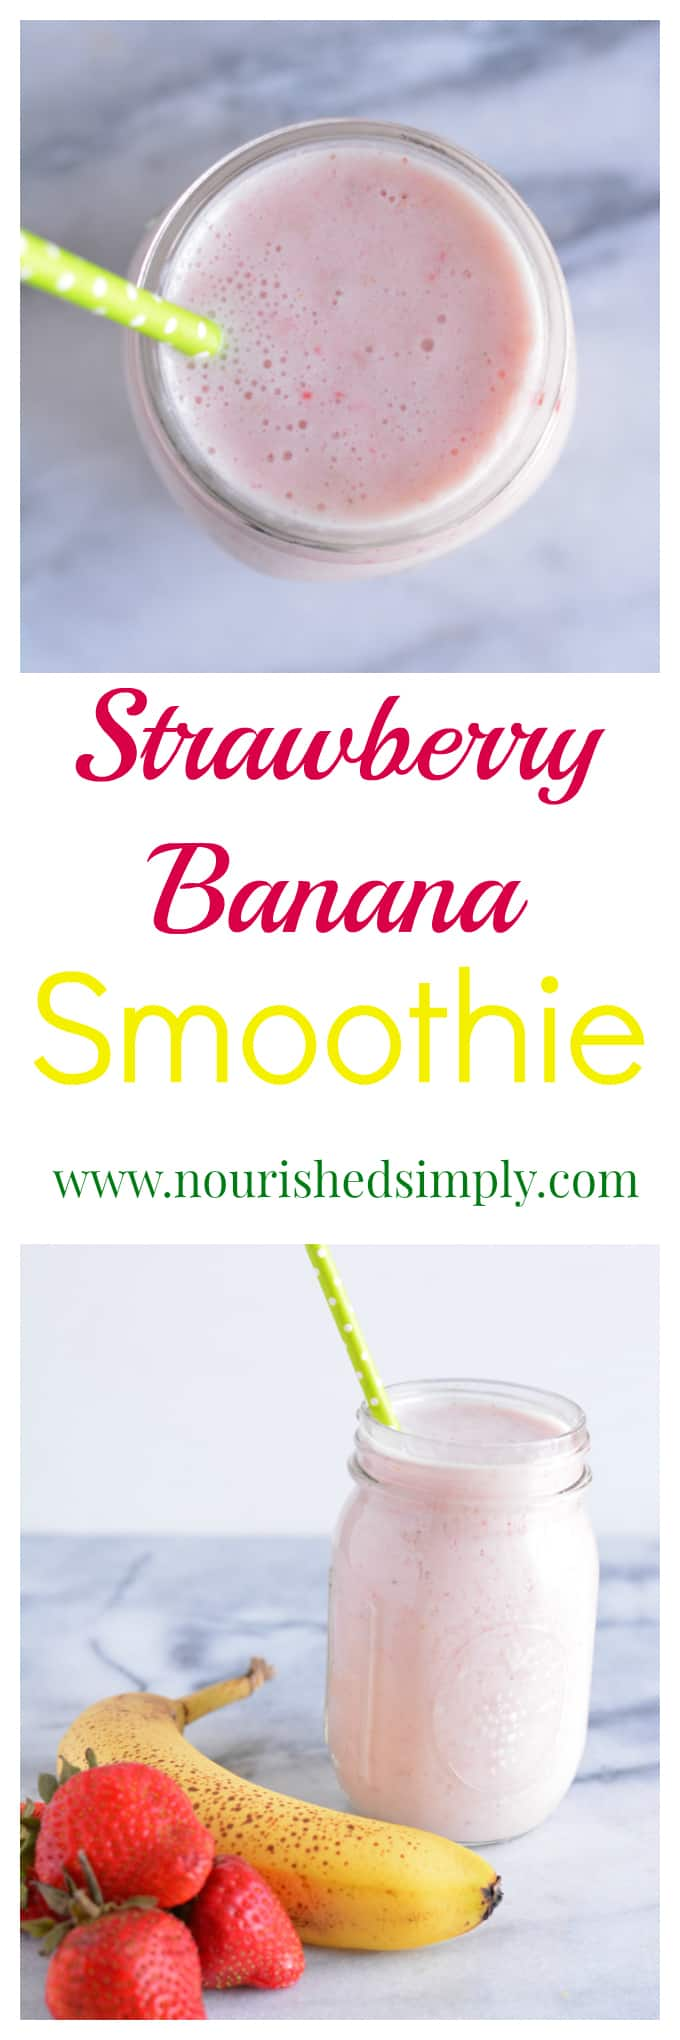 Strawberry Banana Smoothie contains only 4 ingredients. Easy to make on a busy morning with fresh or frozen fruit.